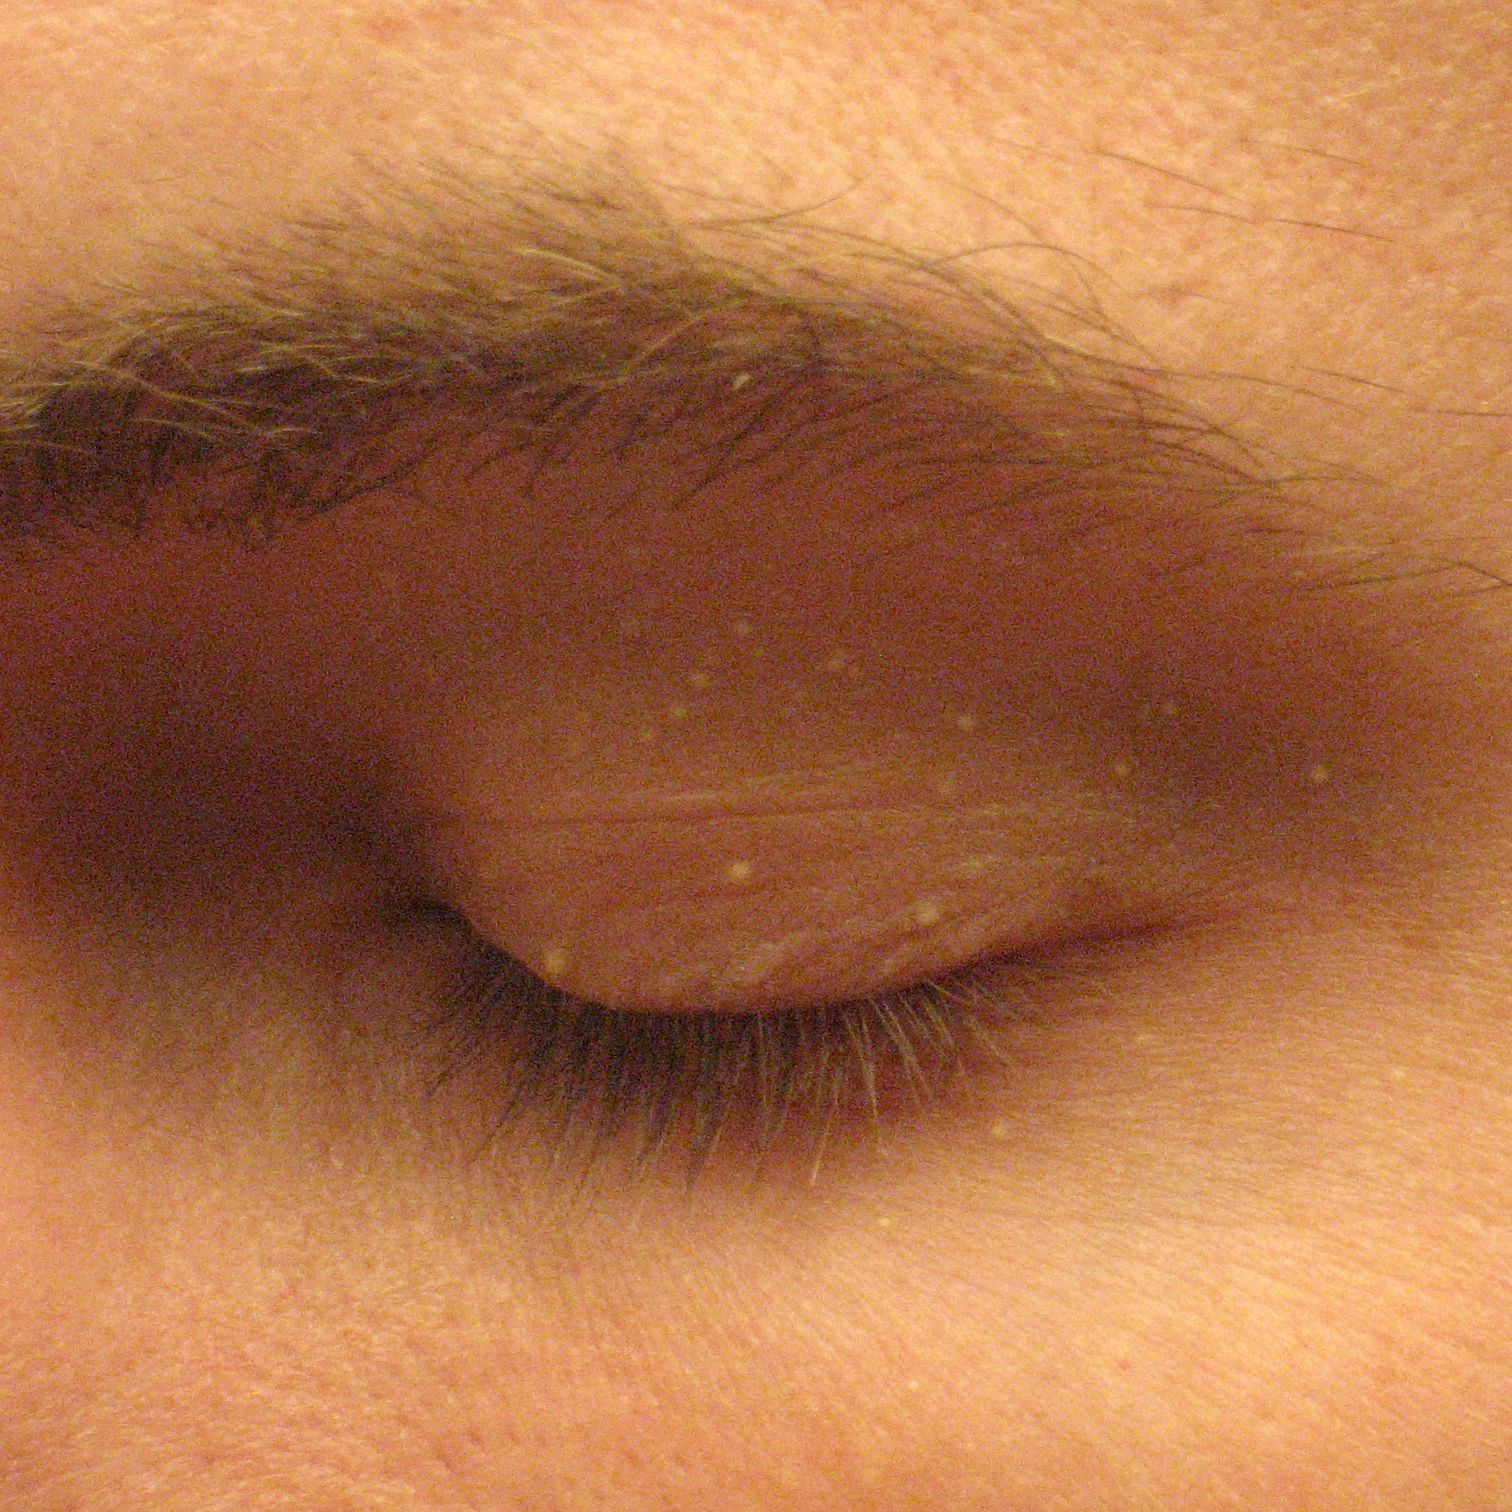 removal of papilloma on eyelid cpt code